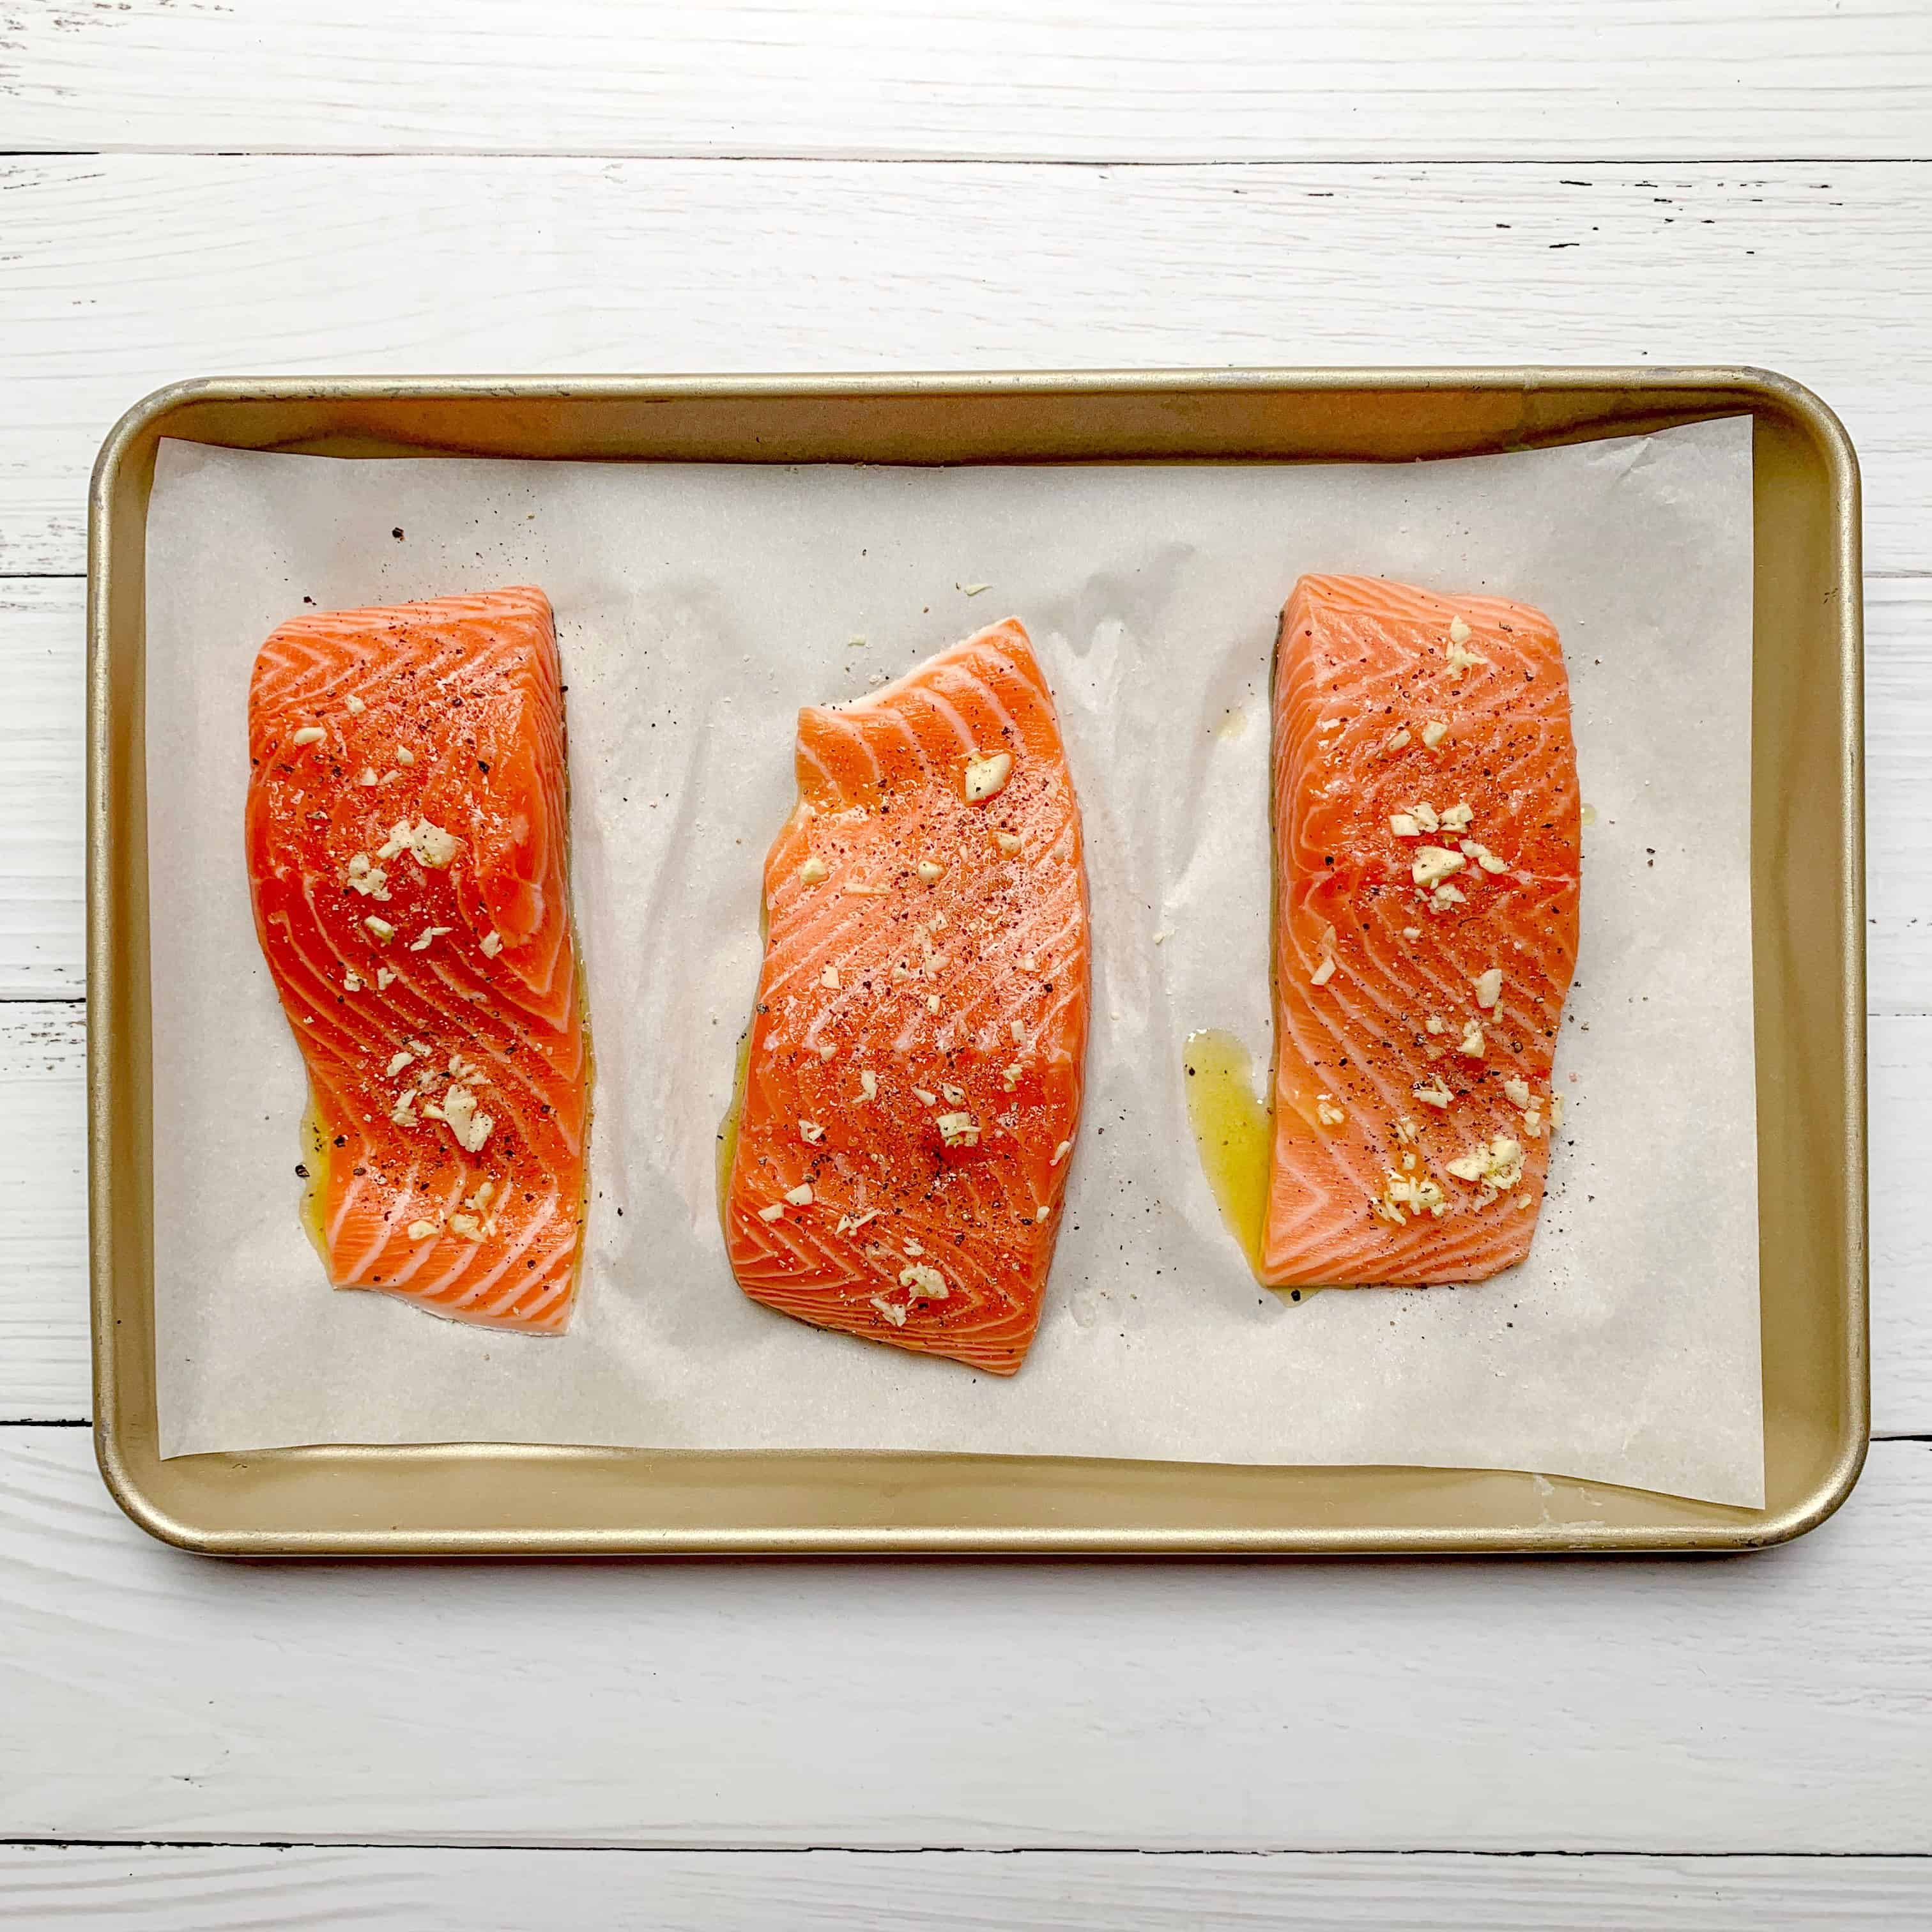 3 big hunks of salmon fillets ready to be cooked on baking sheet